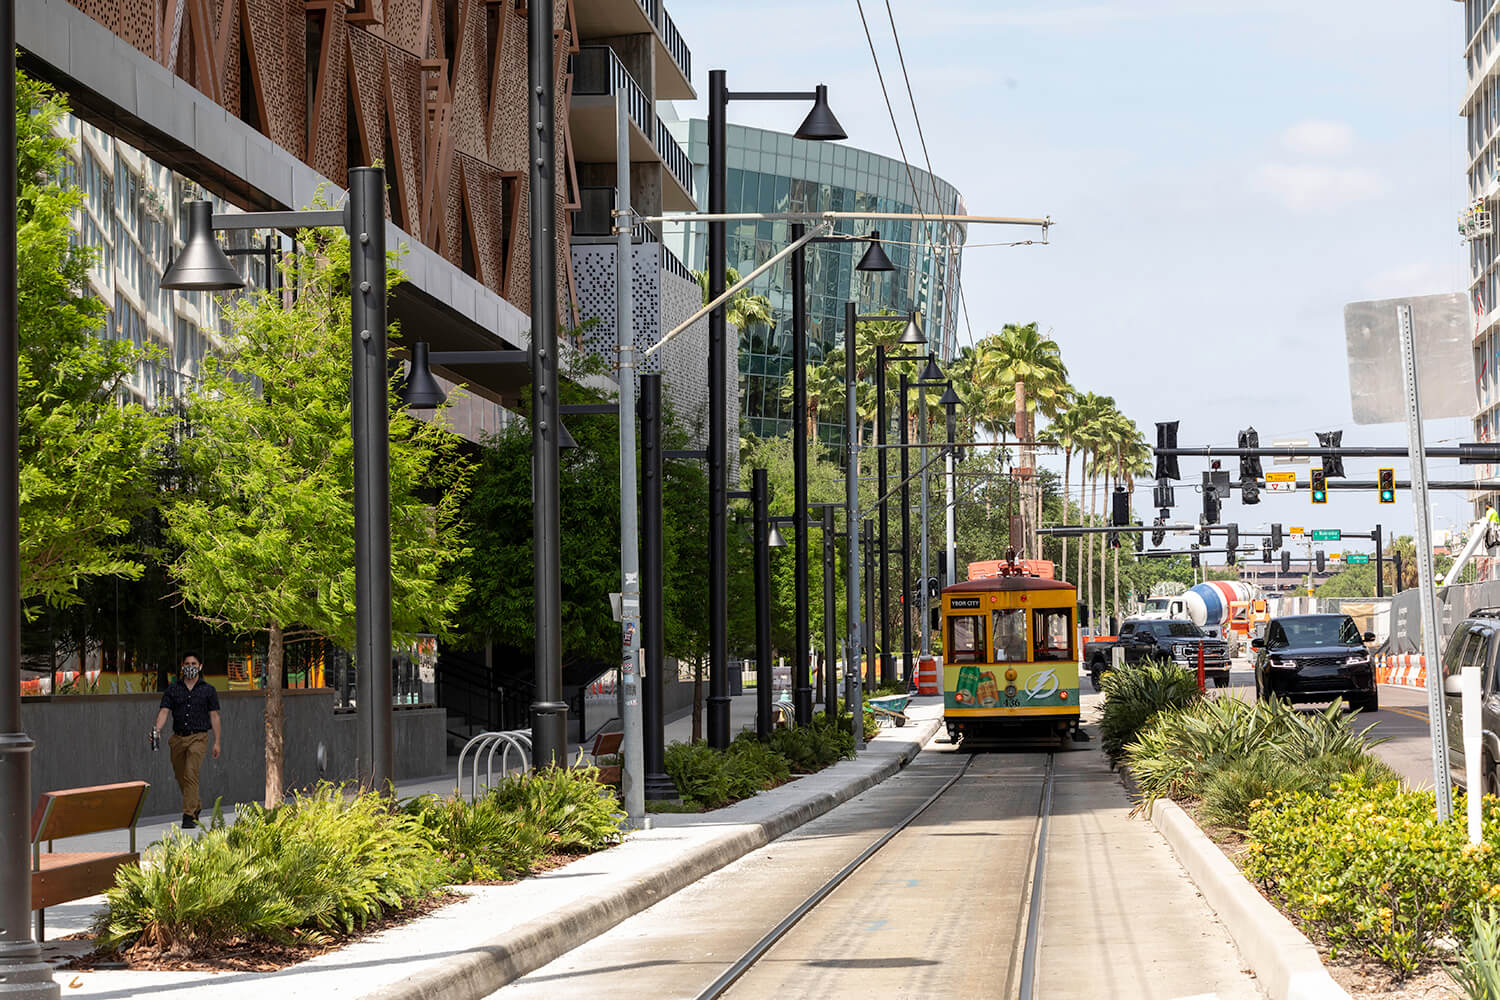 A streetcar glides past a pedestrian down a vegetation-lined track and sidewalk in the Water Street Tampa neighborhood just outside of Heron, a residential building